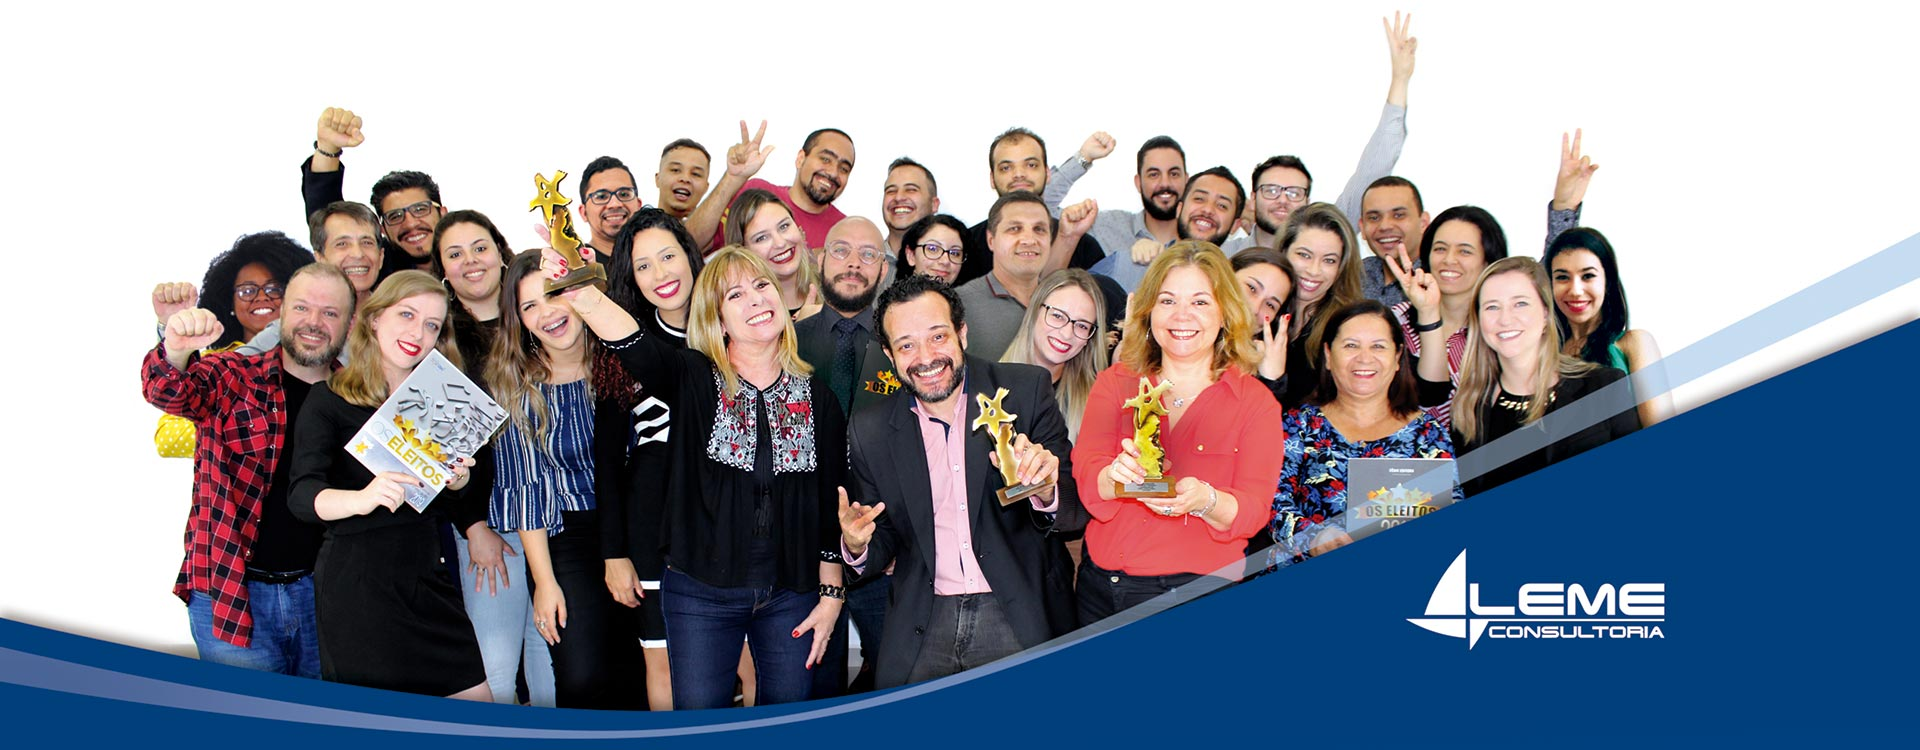 Equipe Leme Consultoria - Tetracampeã do Top of Mind